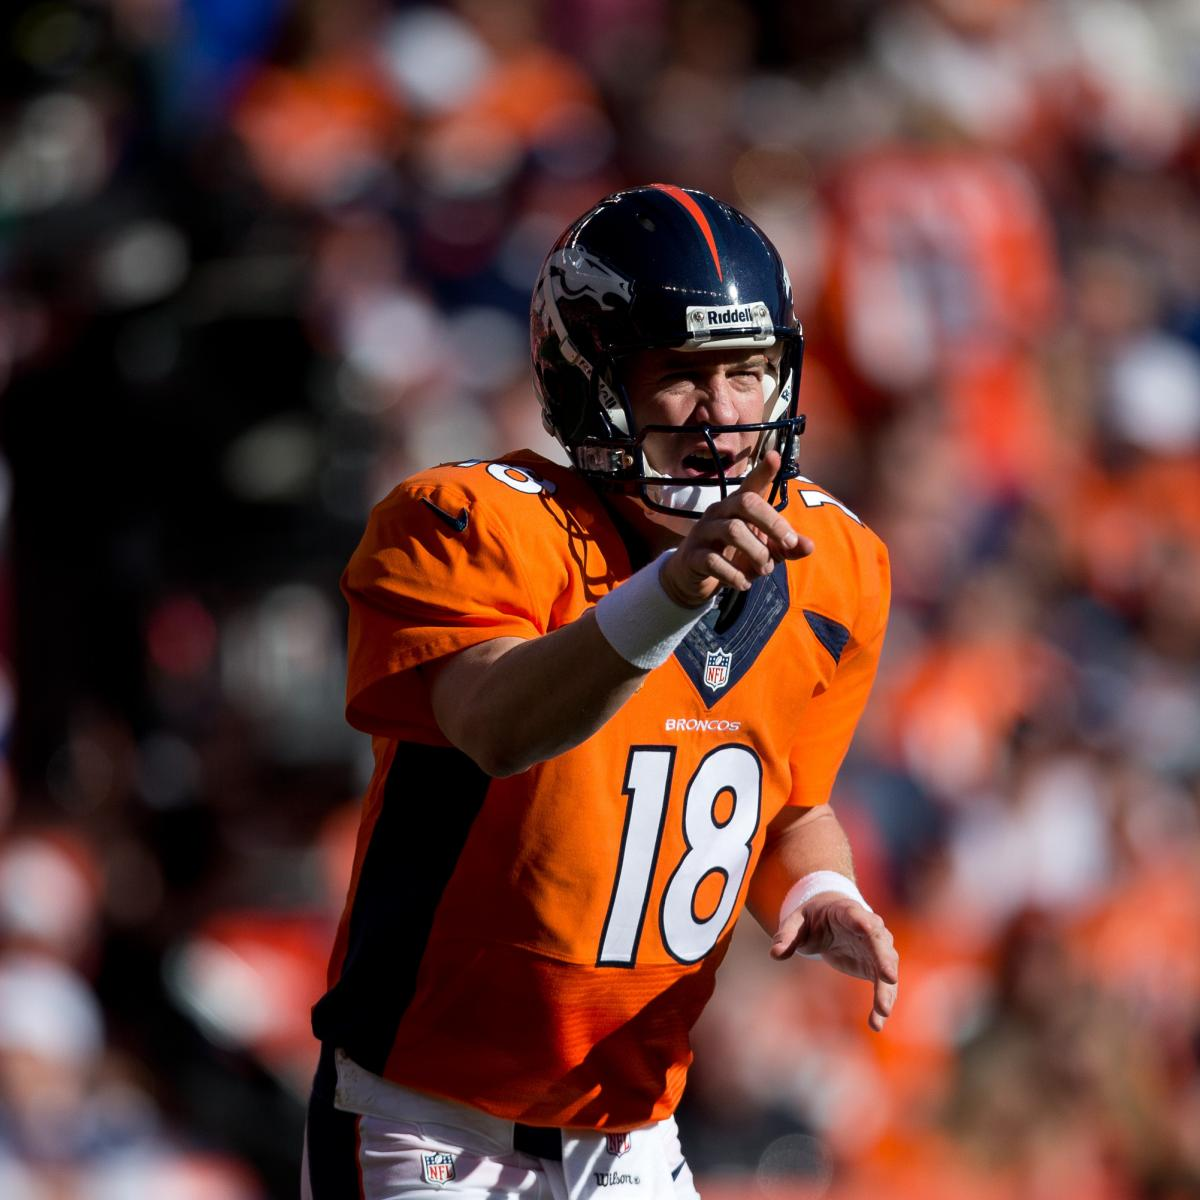 San Diego Chargers Bye Week 2014: Peyton Manning Will Shred San Diego Chargers Defense After